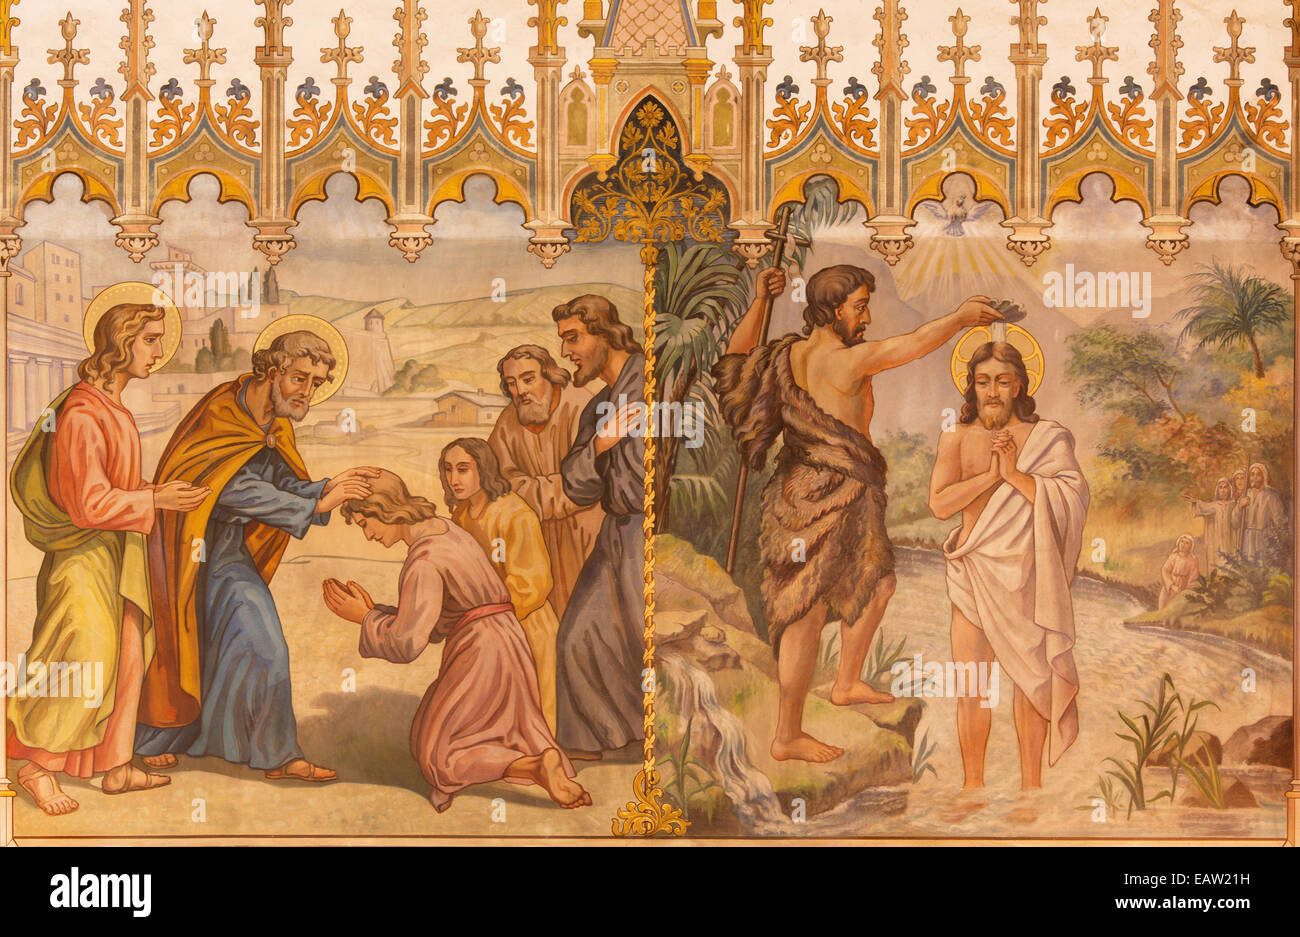 Trnava - The neo-gothic fresco of fhe scene Baptism of Christ and the Apostles at confirmation - Stock Image